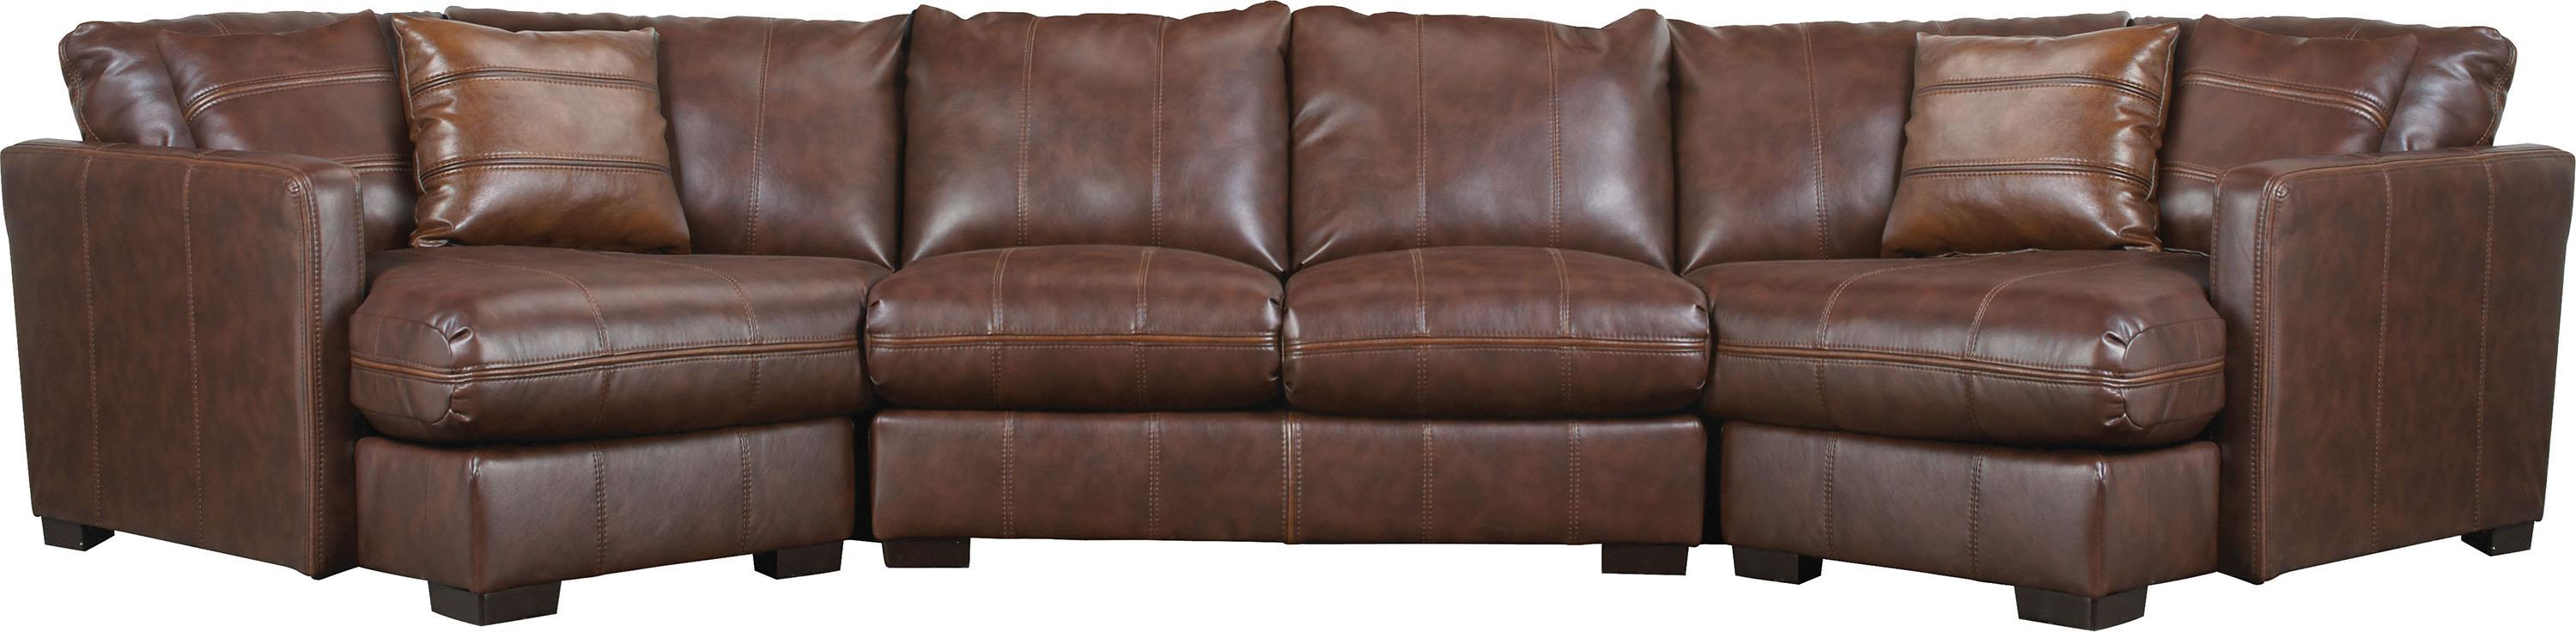 Four seat sectional sofa by jackson furniture wolf and for Sectional sofa with 4 recliners